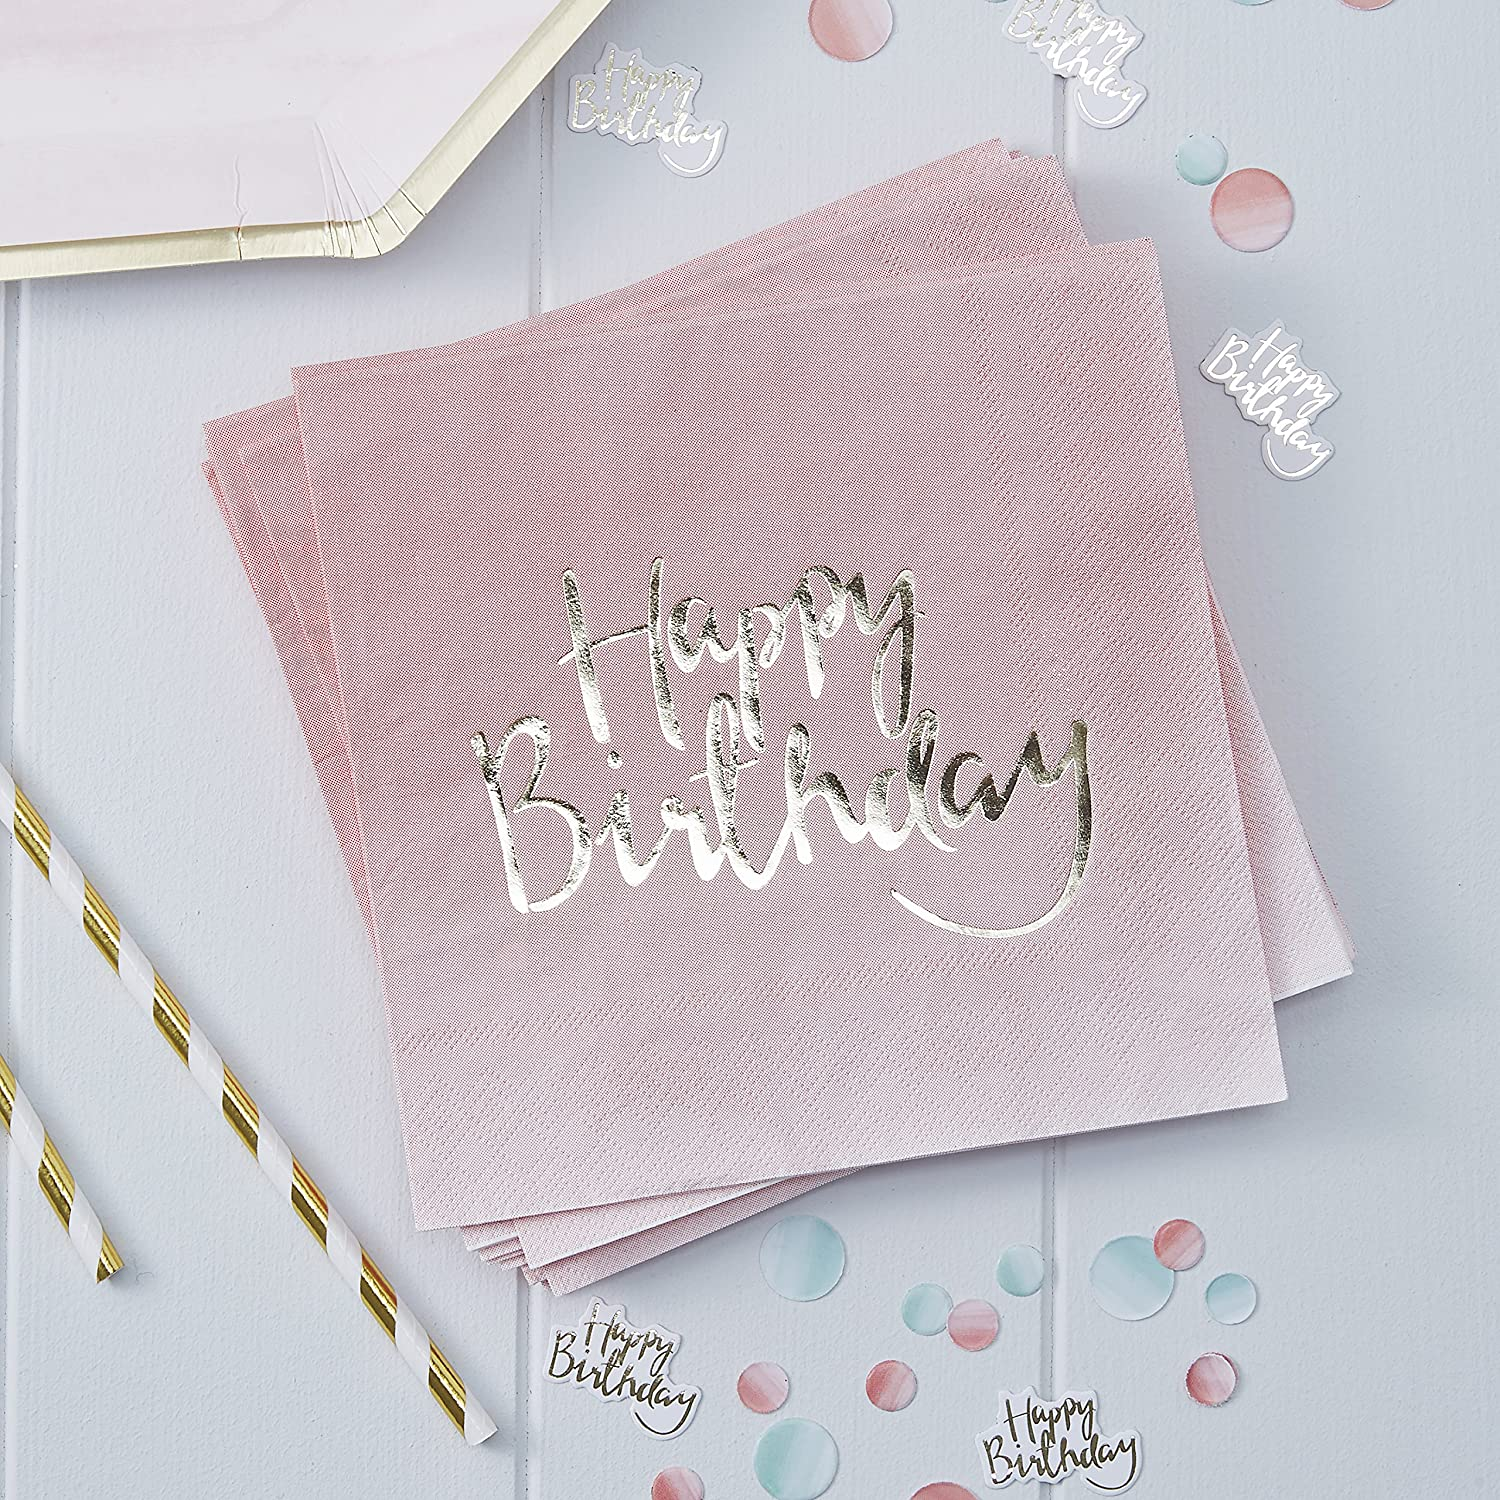 Ginger Ray Gold Foiled Pink Ombre Happy Birthday Party Paper Napkins X 20 - Pick And Mix PM-908